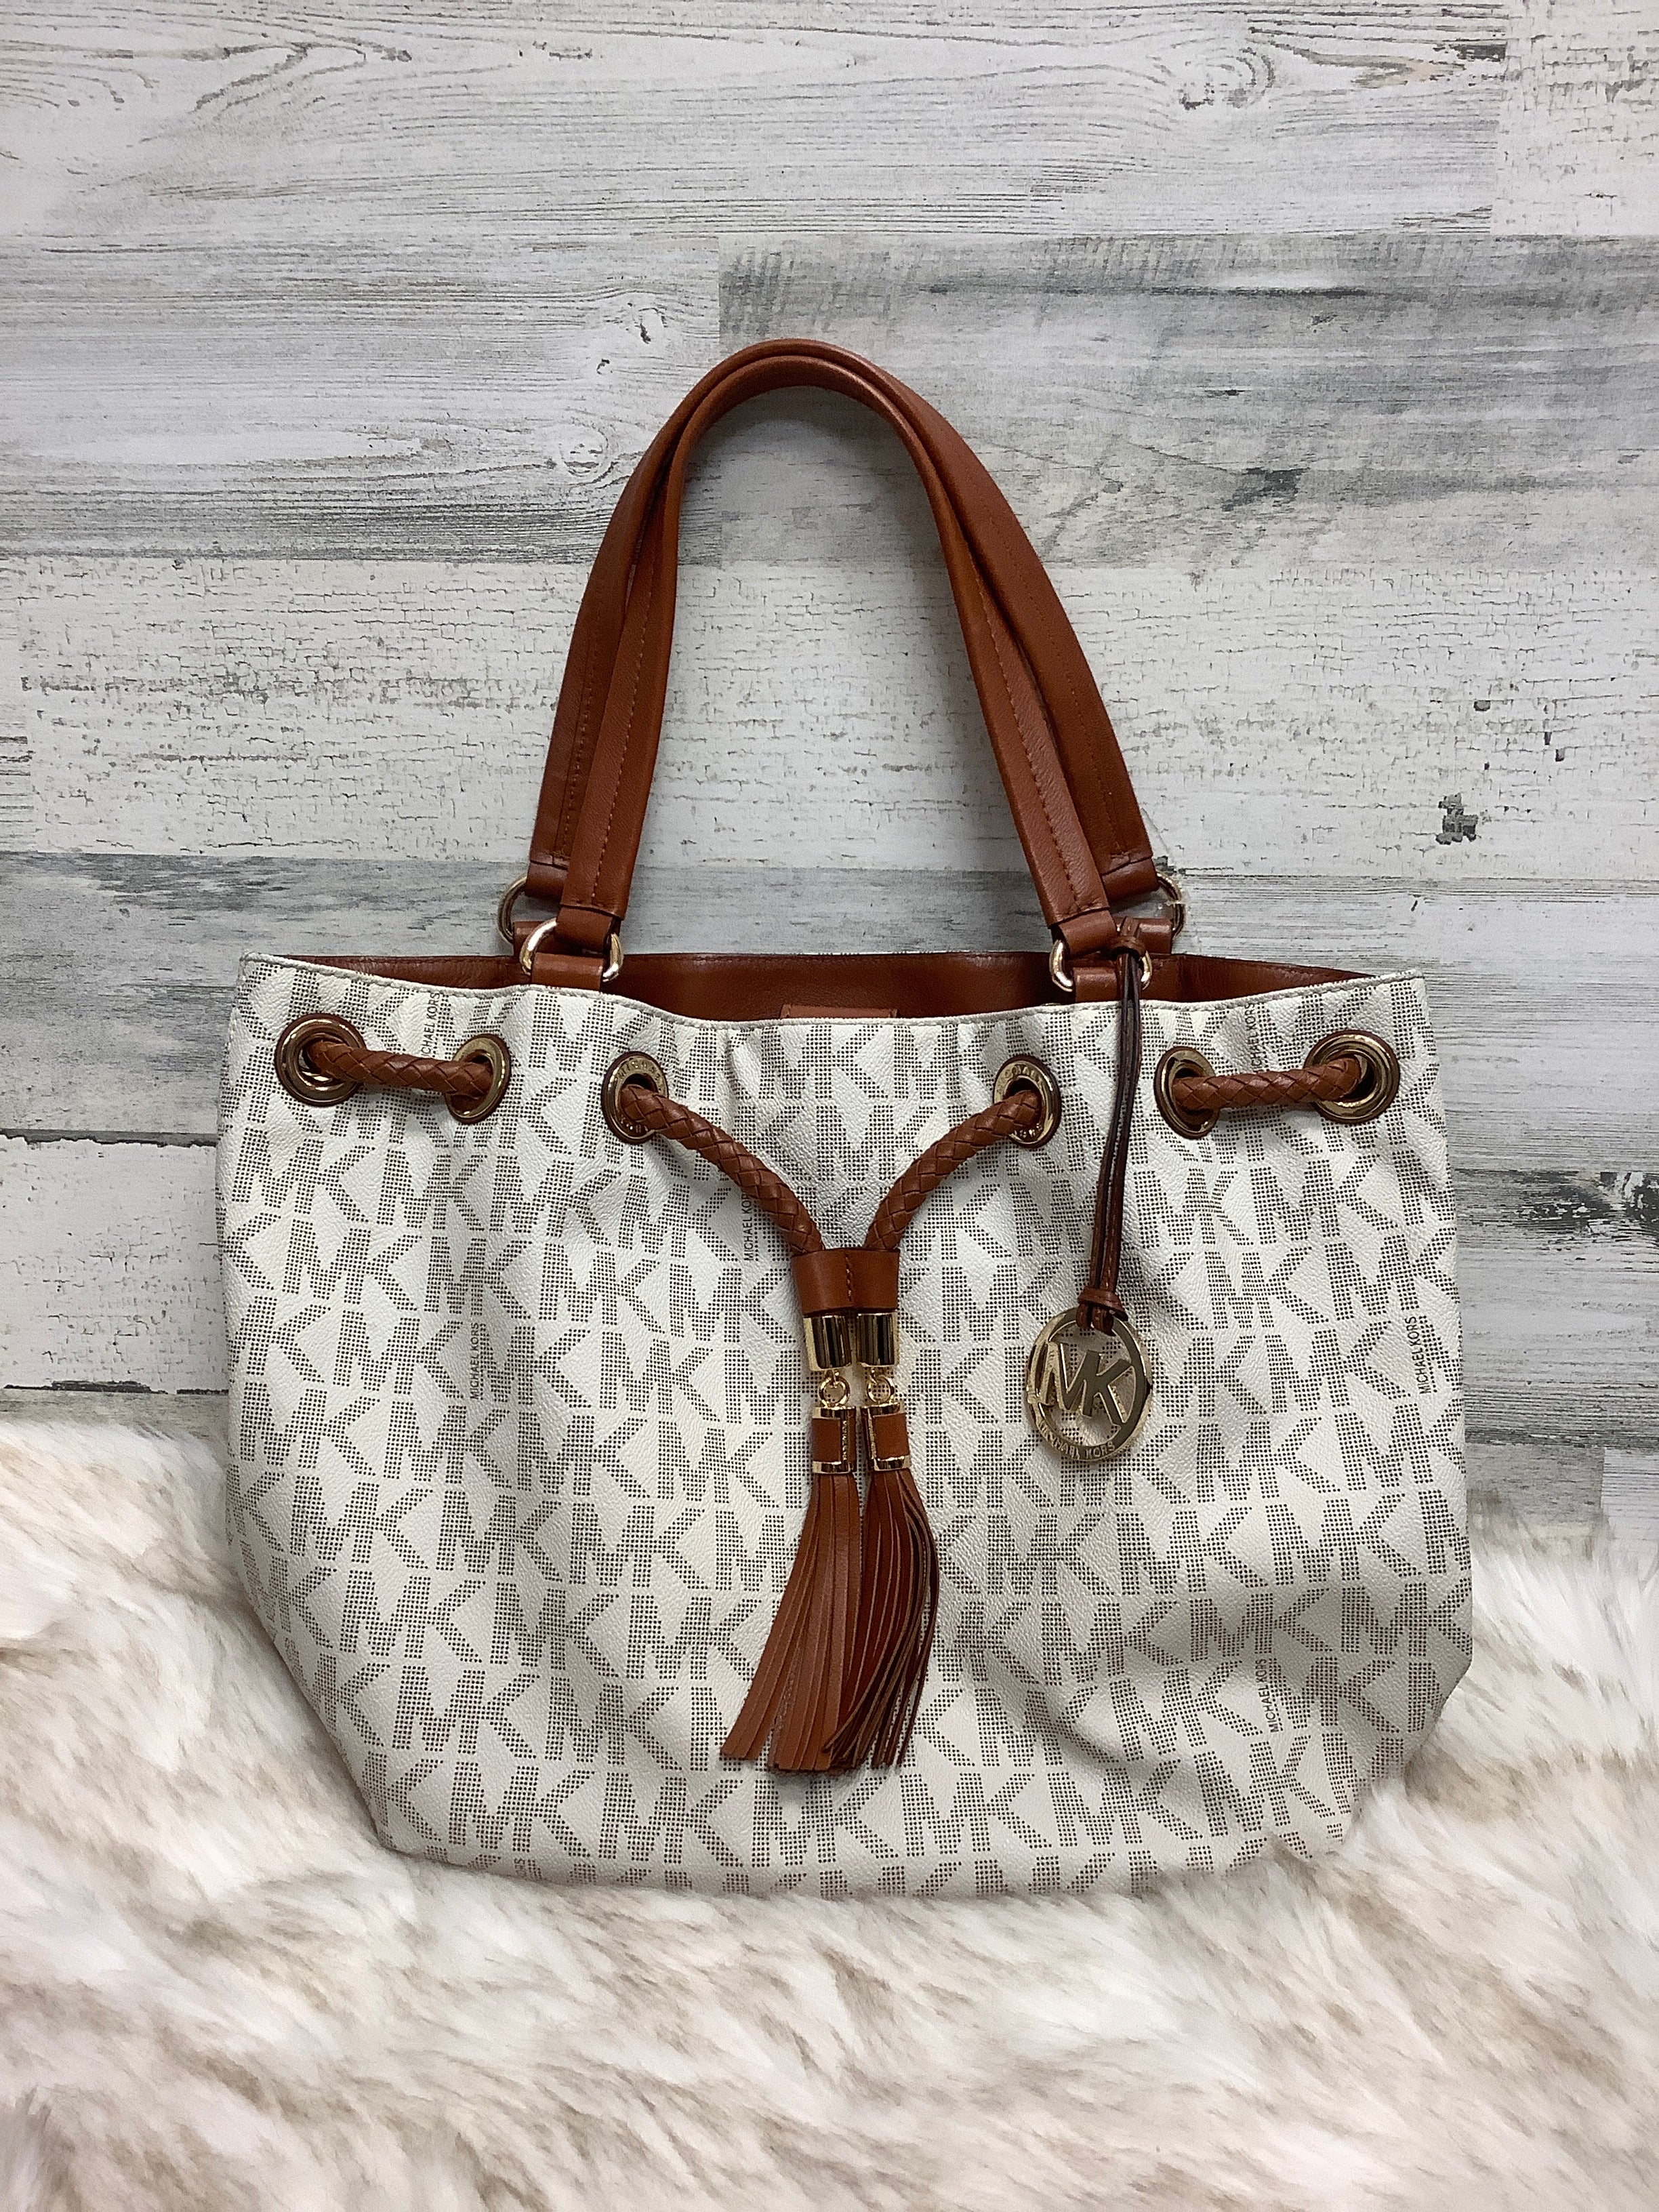 Primary Photo - BRAND: MICHAEL KORS <BR>STYLE: HANDBAG DESIGNER <BR>COLOR: WHITE <BR>SIZE: LARGE <BR>OTHER INFO: 30T3GTTT9B <BR>SKU: 153-15399-17329